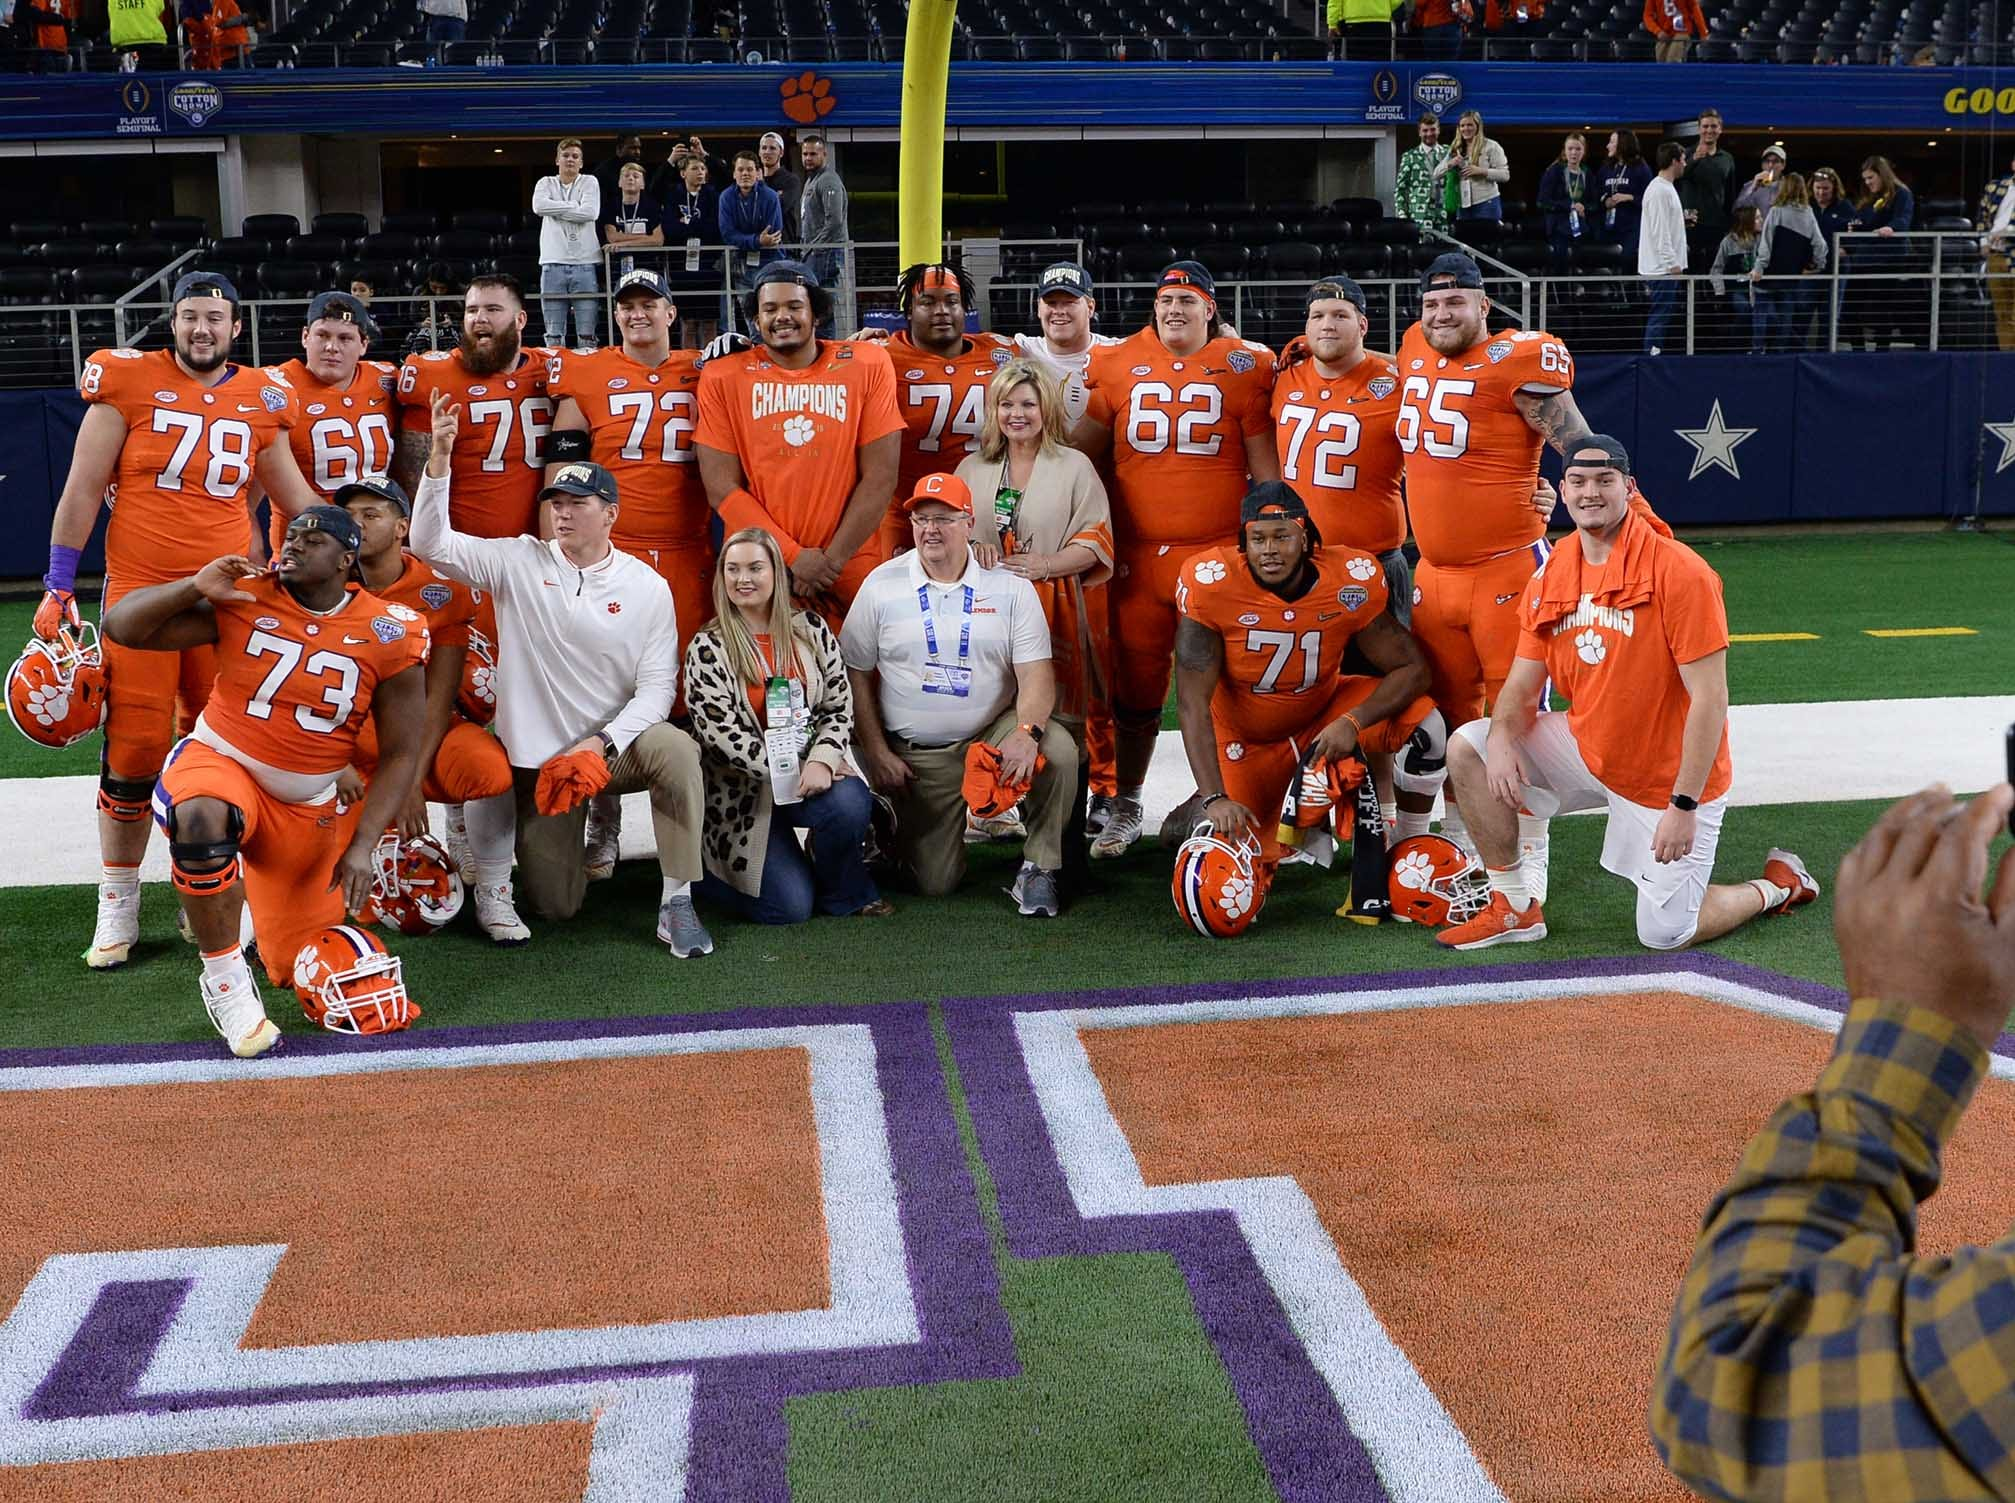 Clemson offensive linemen pose for a photo after the College Football Playoff Semifinal 30-3 win over Notre Dame at the Goodyear Cotton Bowl Classic at AT&T Stadium in Arlington, Texas Saturday, December 29, 2018.